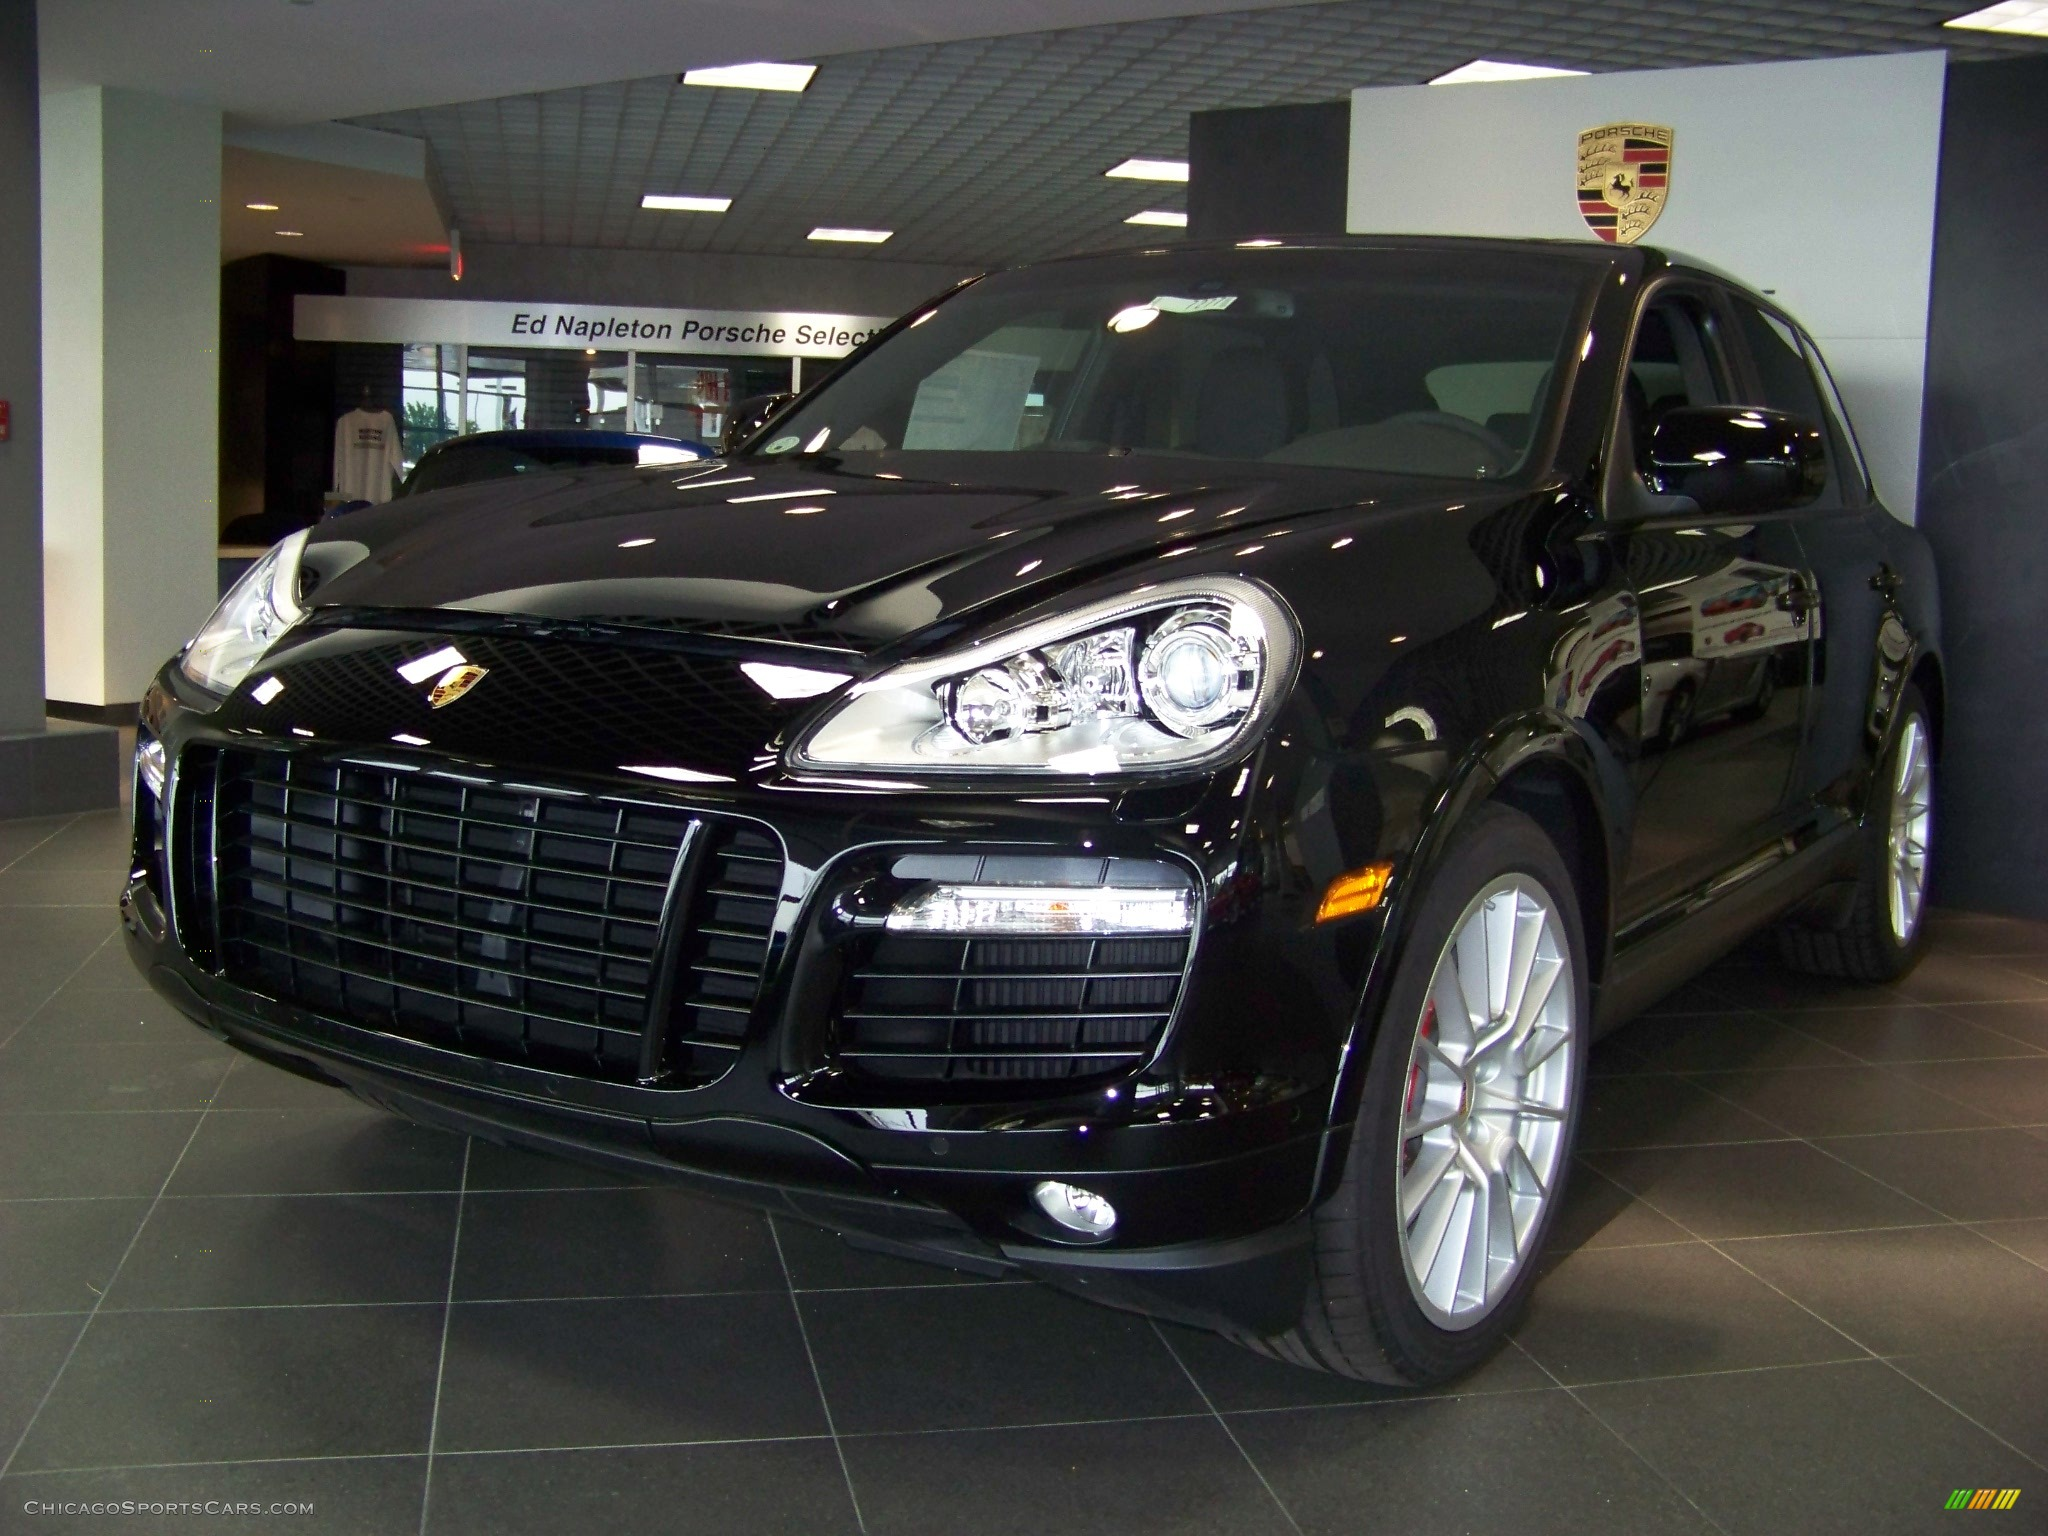 2009 porsche cayenne turbo s in black a82657 cars for sale in illinois. Black Bedroom Furniture Sets. Home Design Ideas